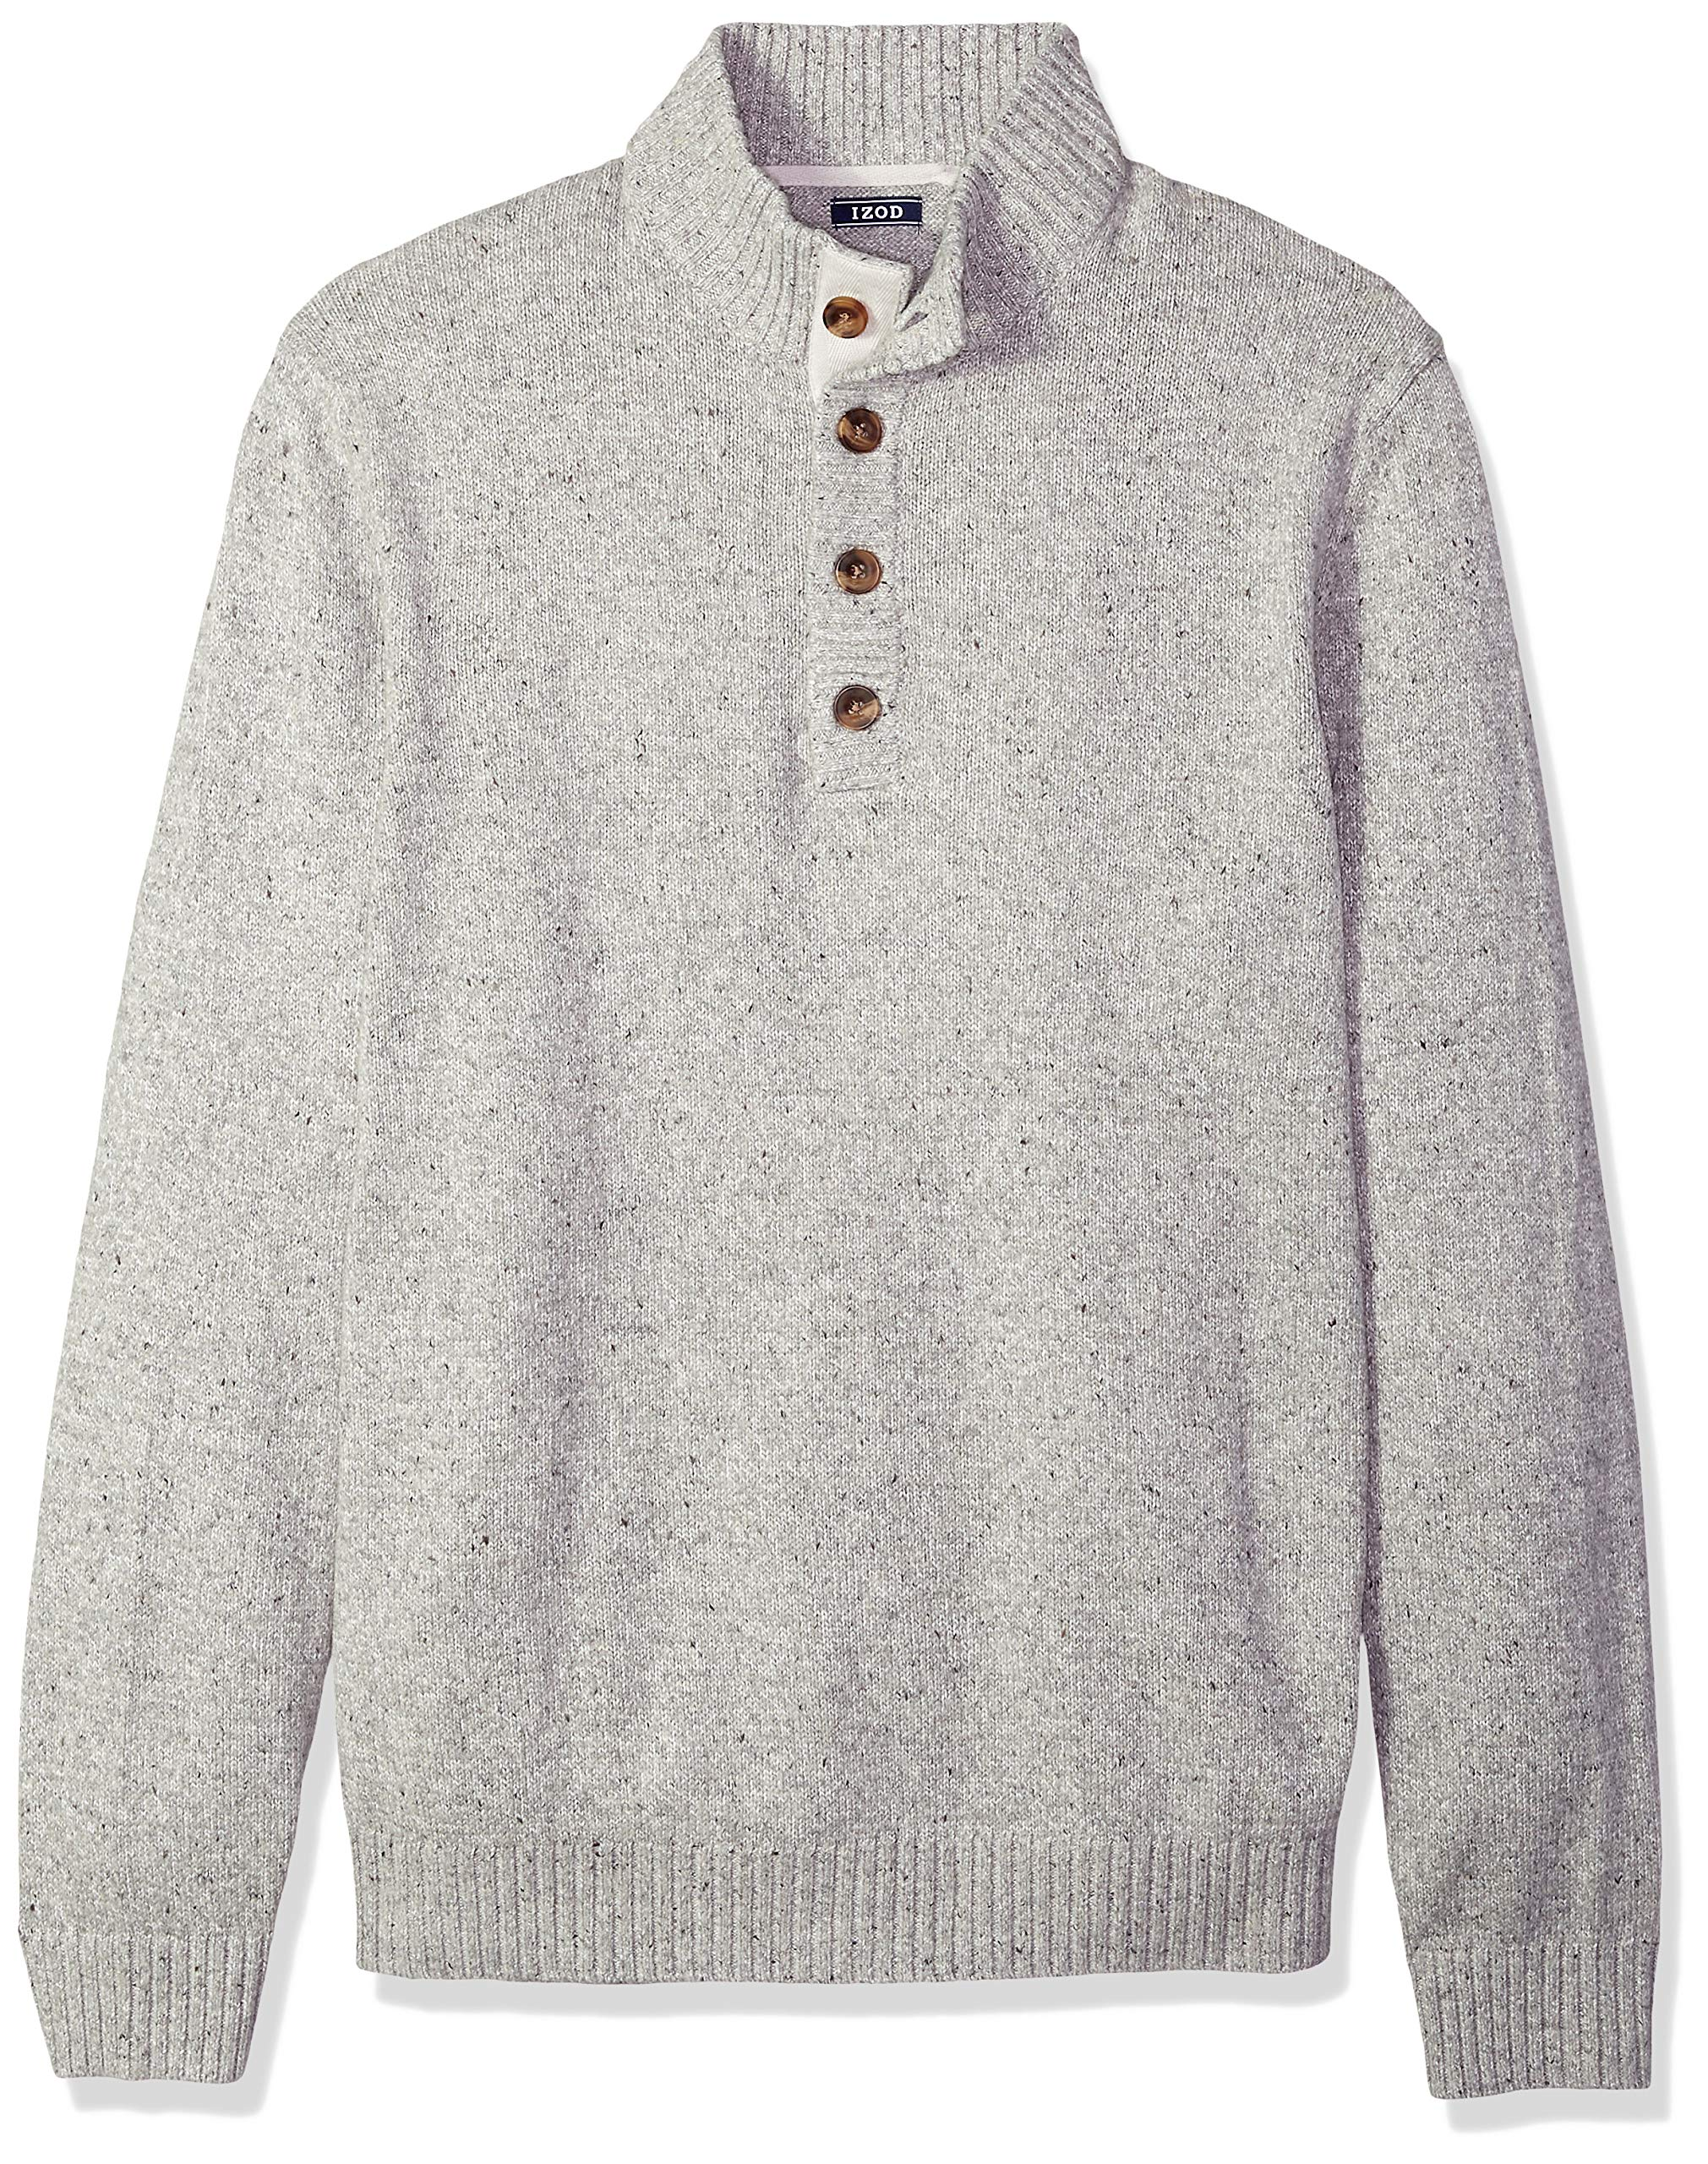 IZOD Men's Big and Tall Buttoned Mock Neck Solid 7 Gauge Sweater, Edifice Heather, 4X-Large